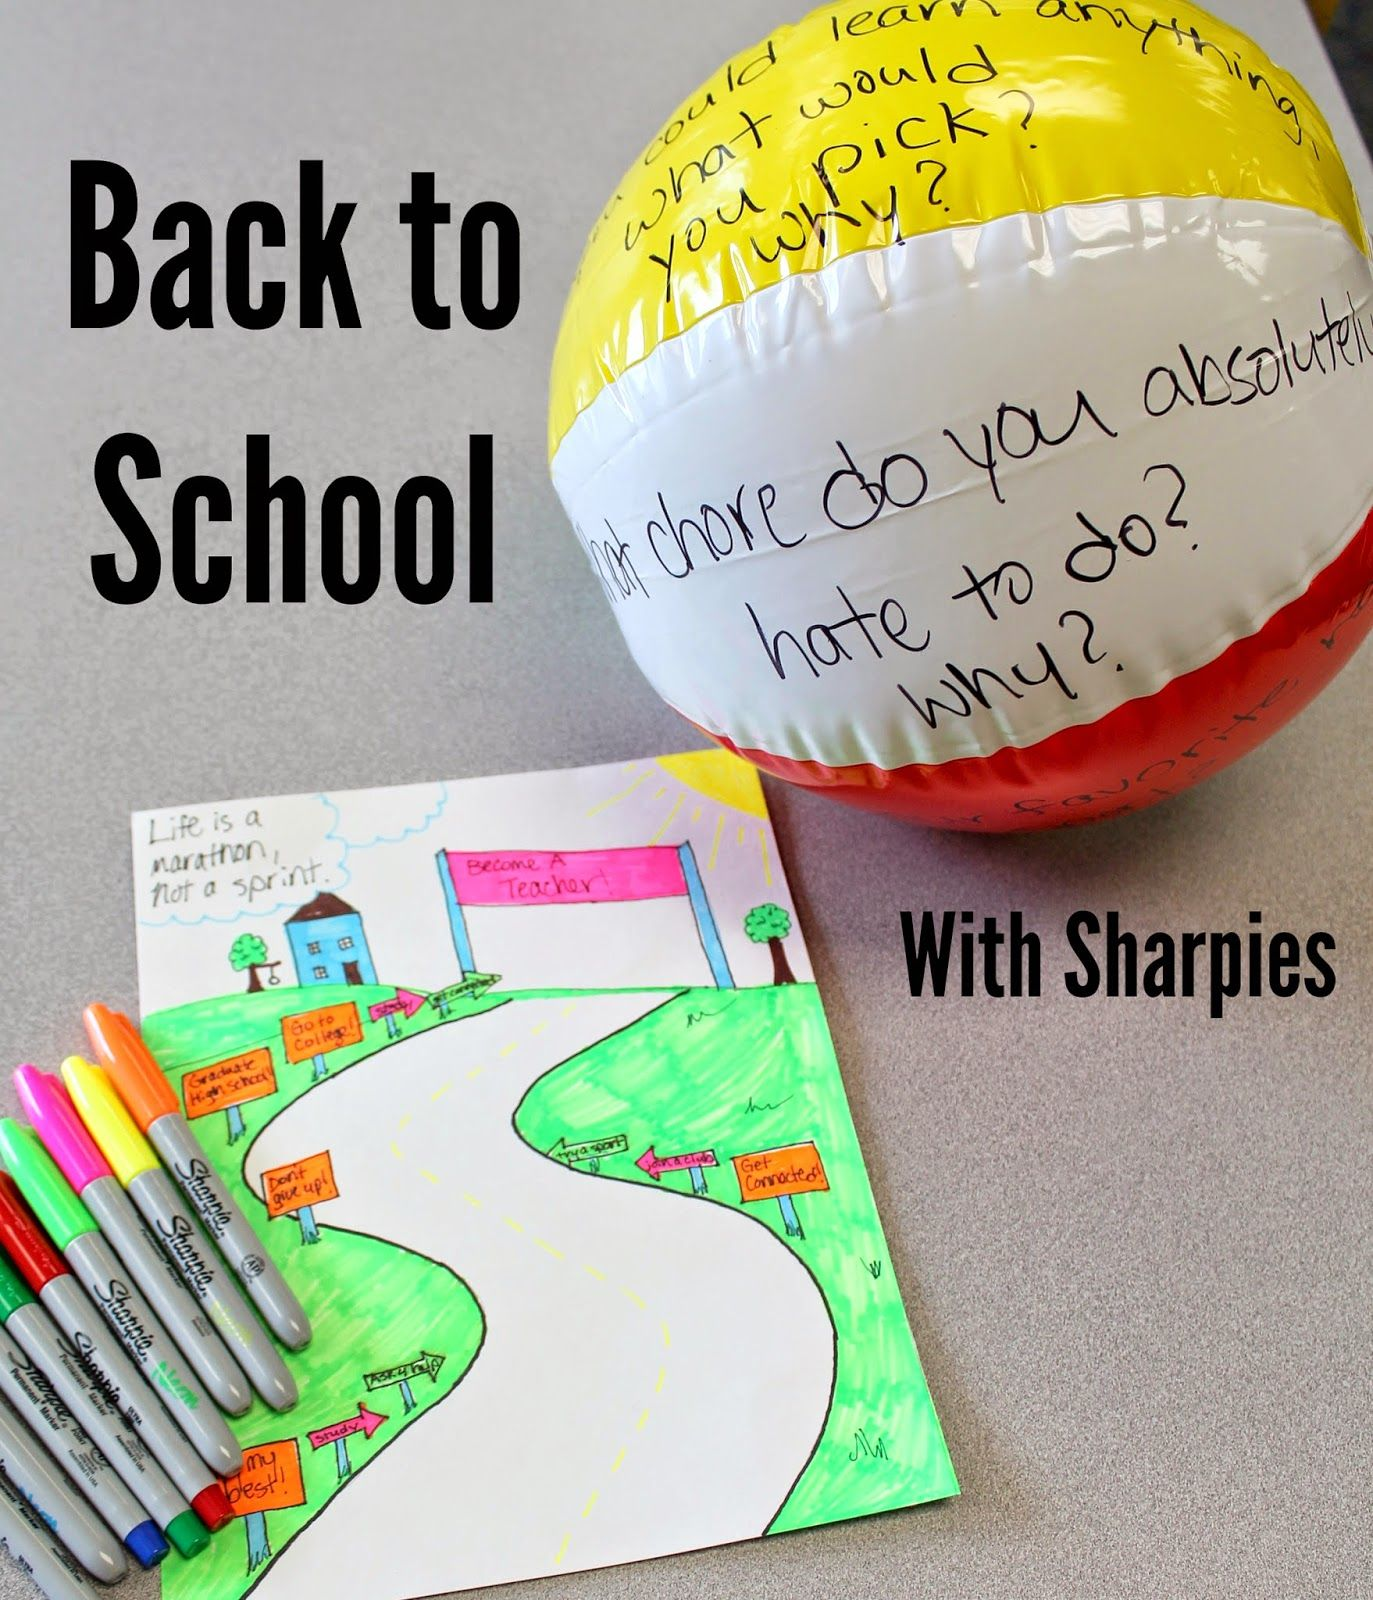 Back To School With Sharpies At Staples